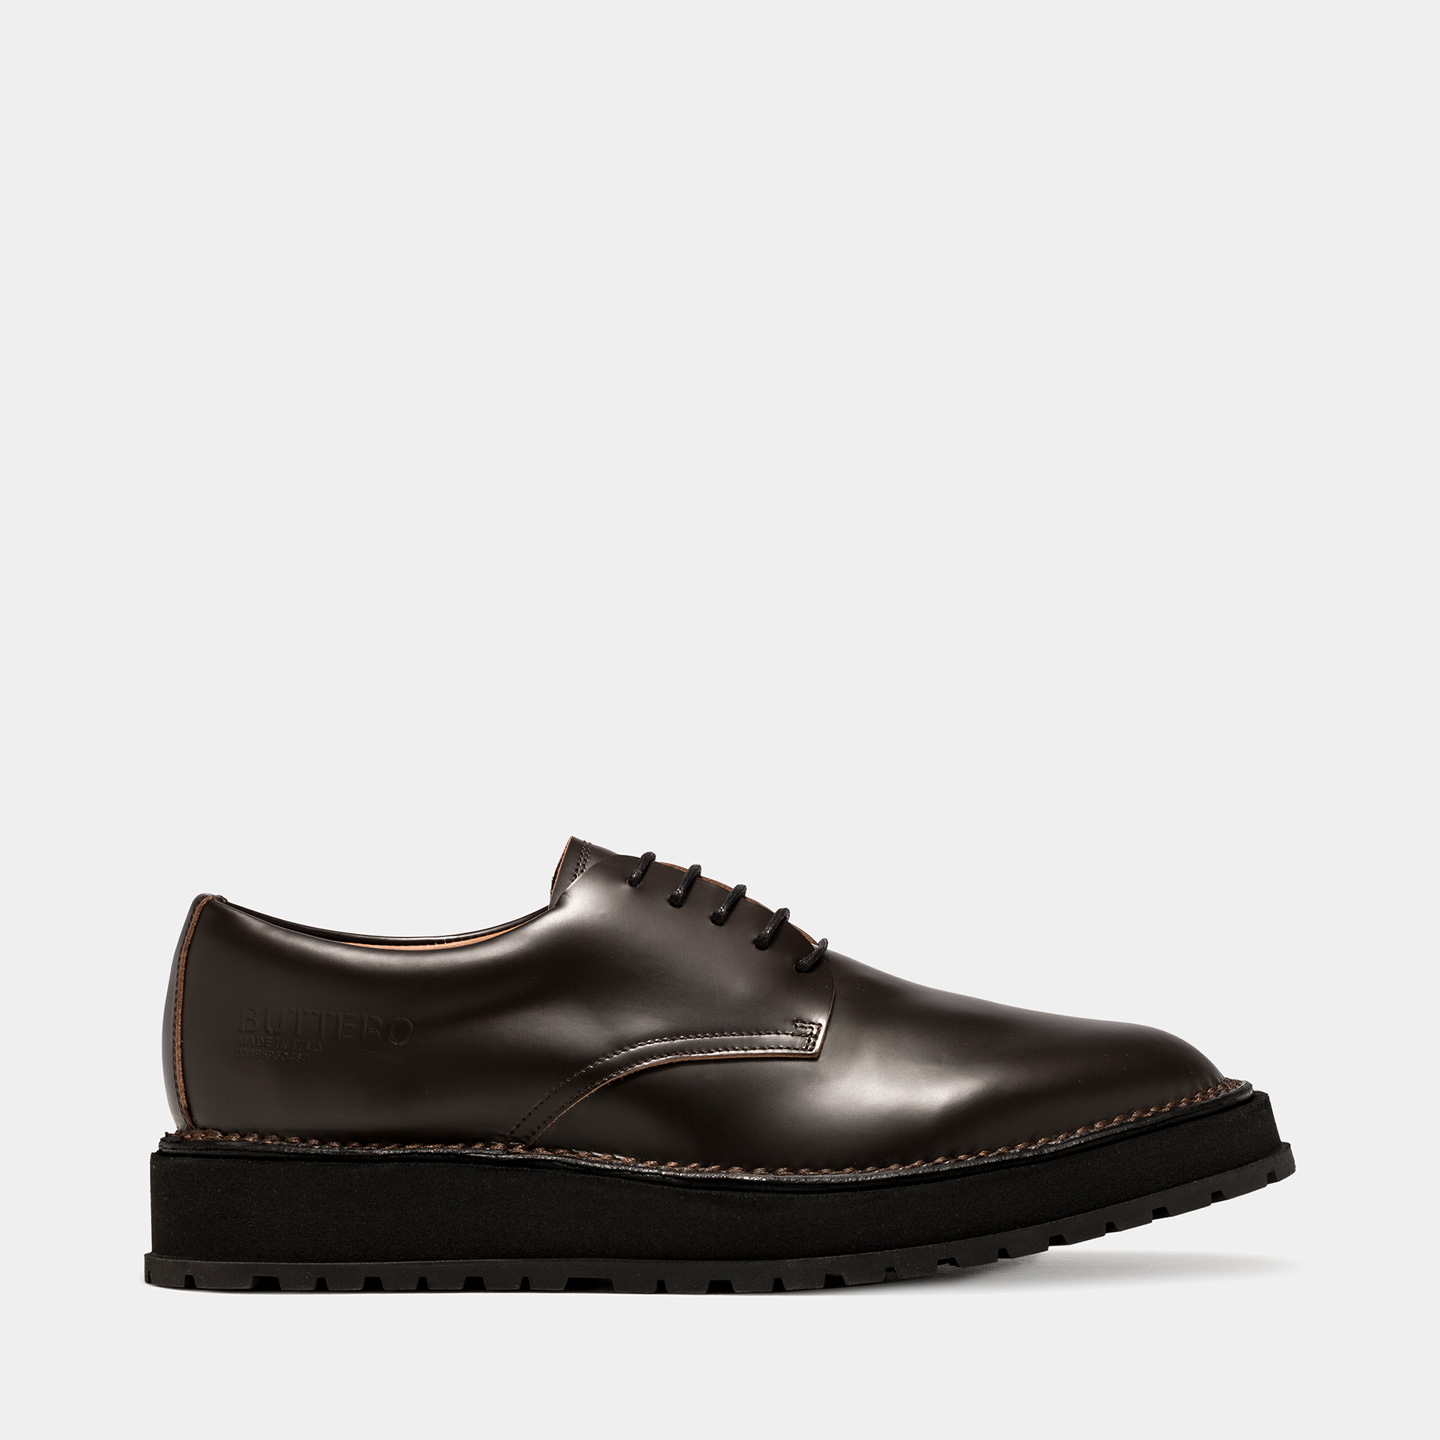 BUTTERO: AEDI DERBY SHOES IN DARK BROWN BRUSHED LEATHER